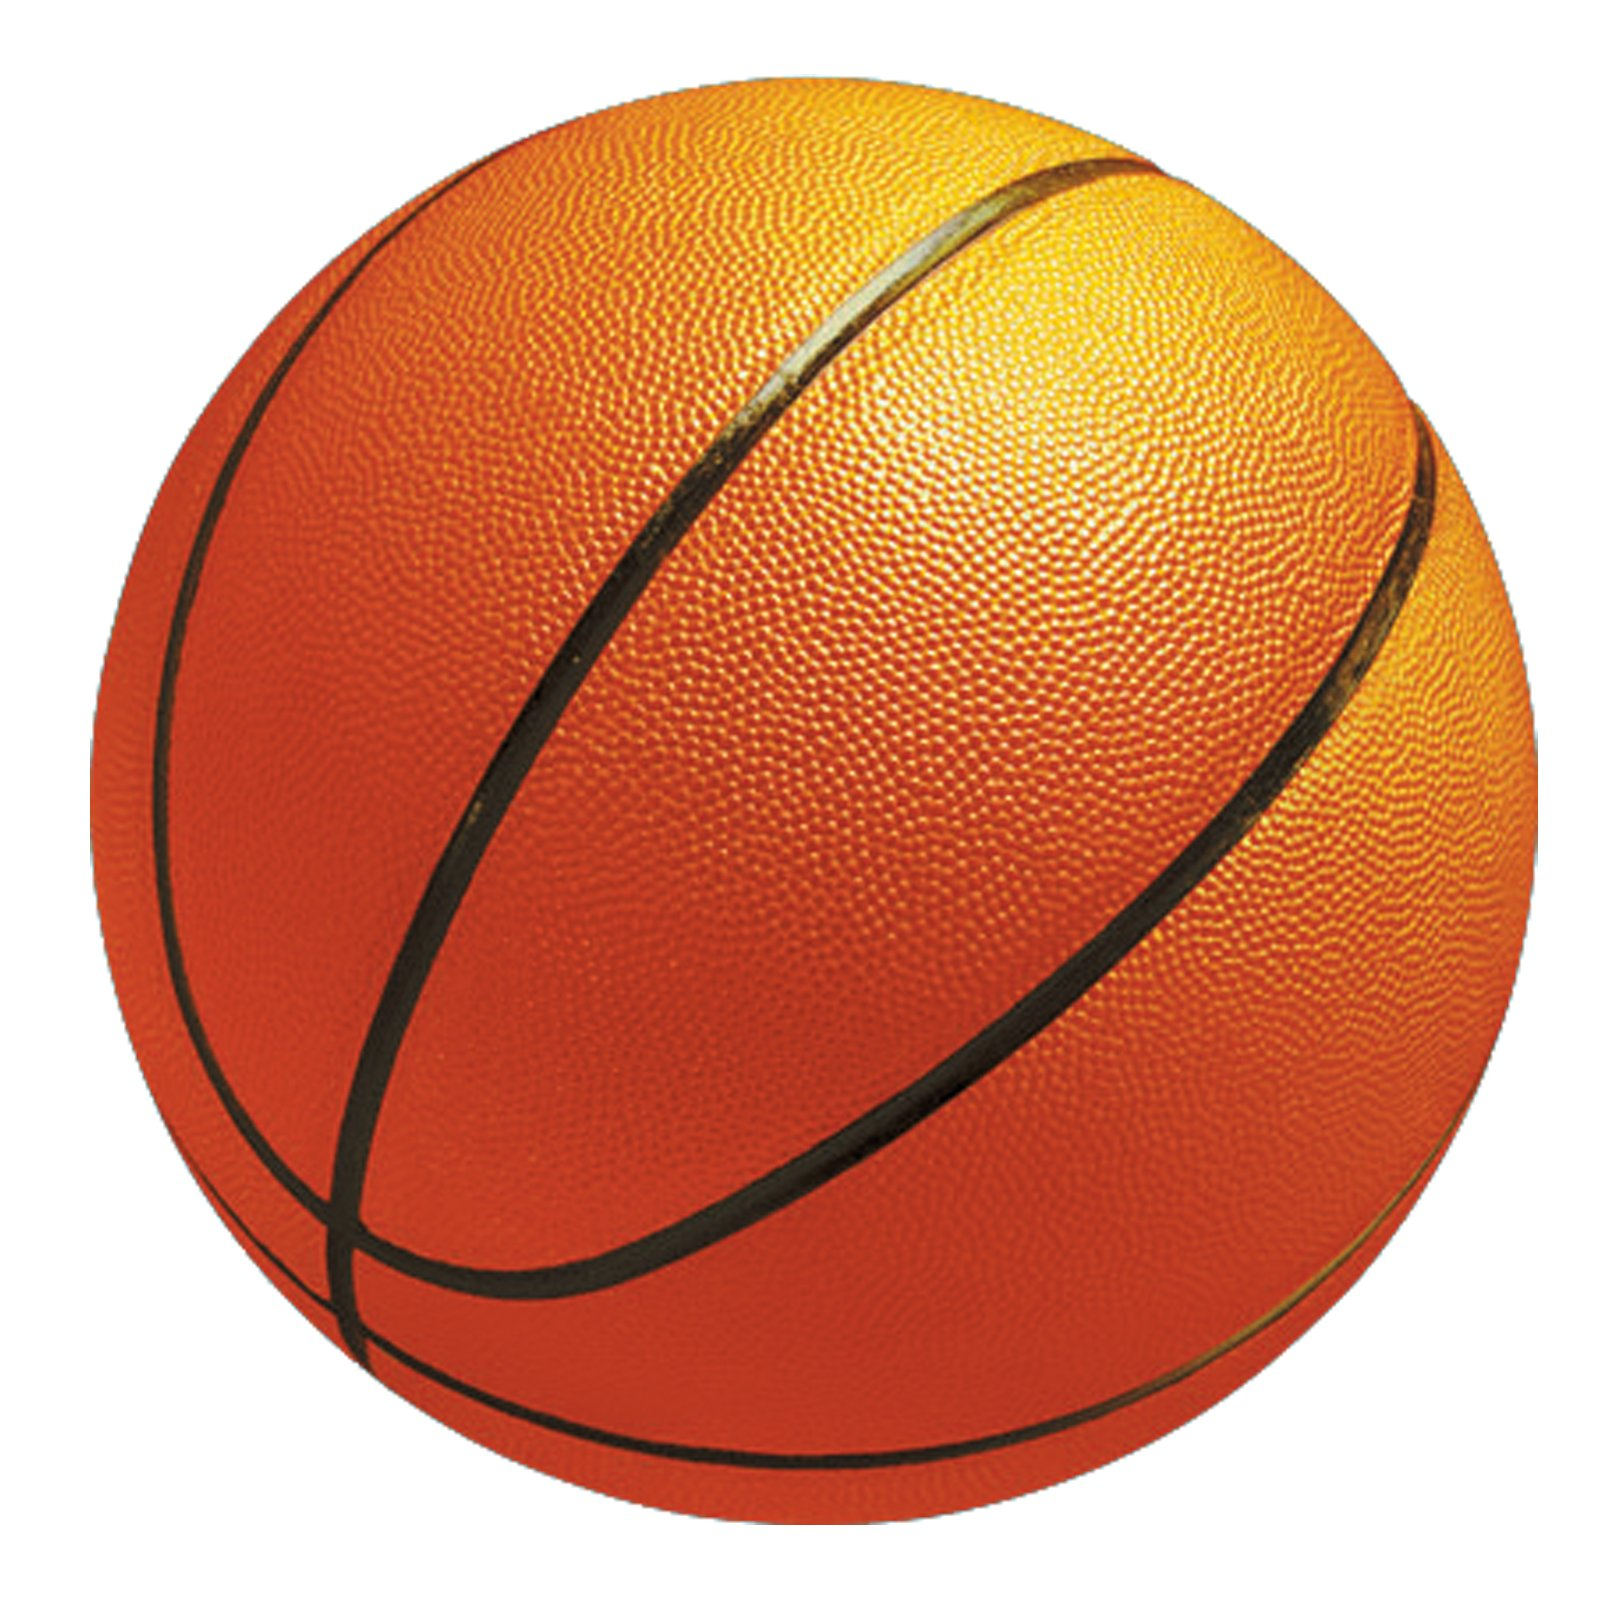 Ten Benefits of Basketball | The Random Science